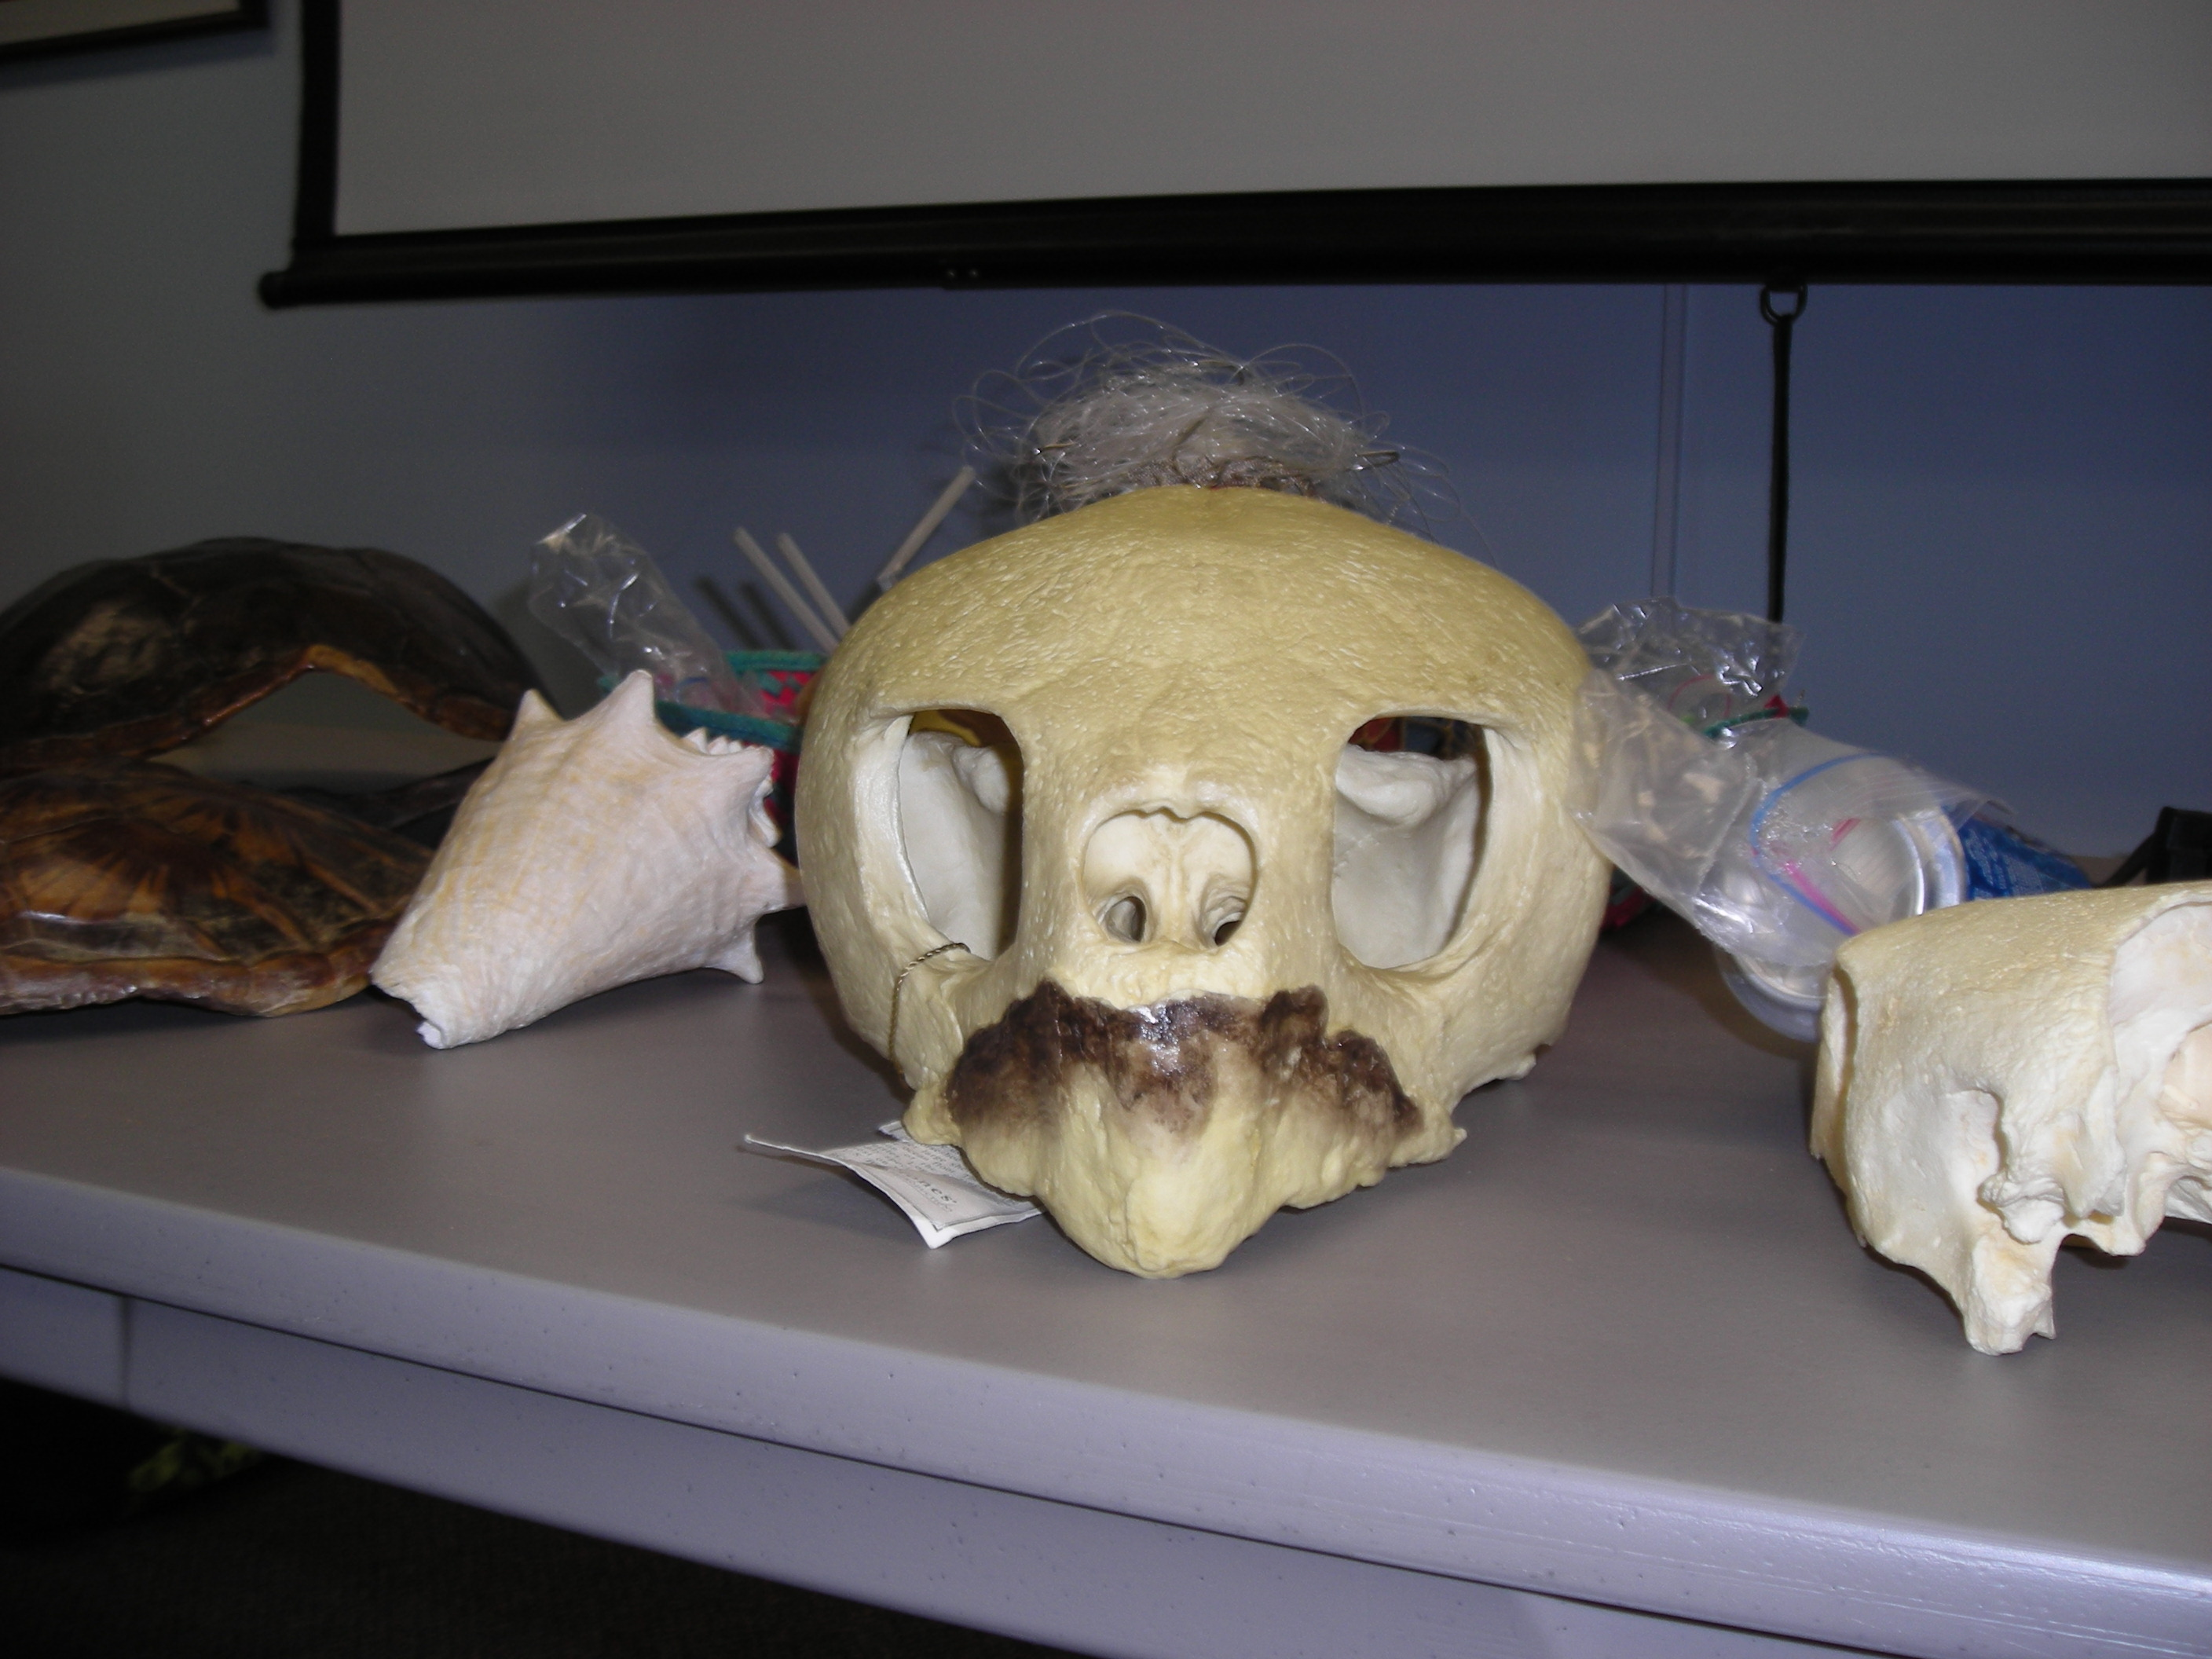 A skull of an animal on display